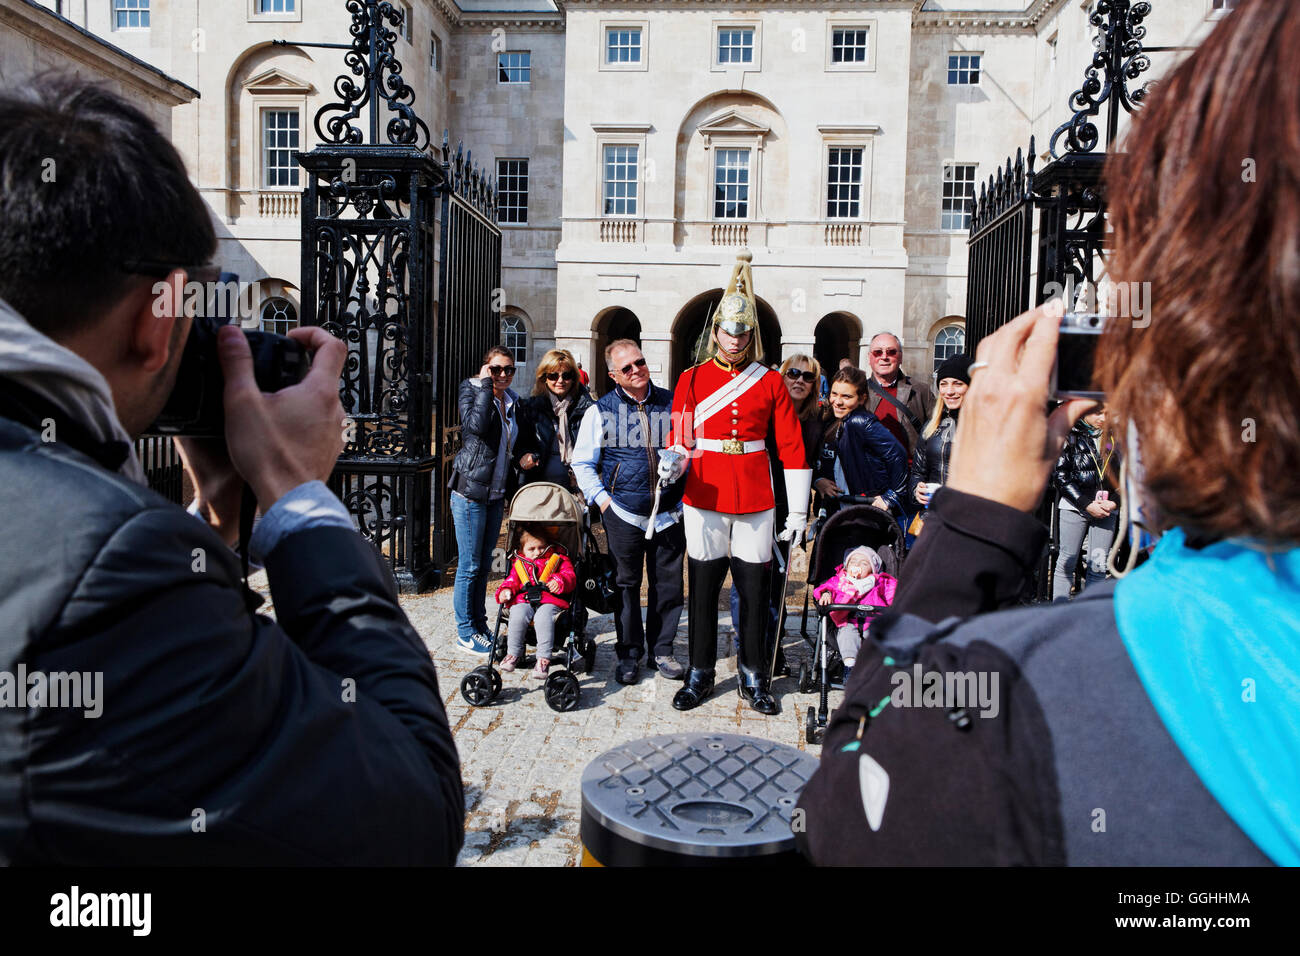 Guard at Horse Guards Parade, Whitehall, Westminster, London, England, United Kingdom - Stock Image